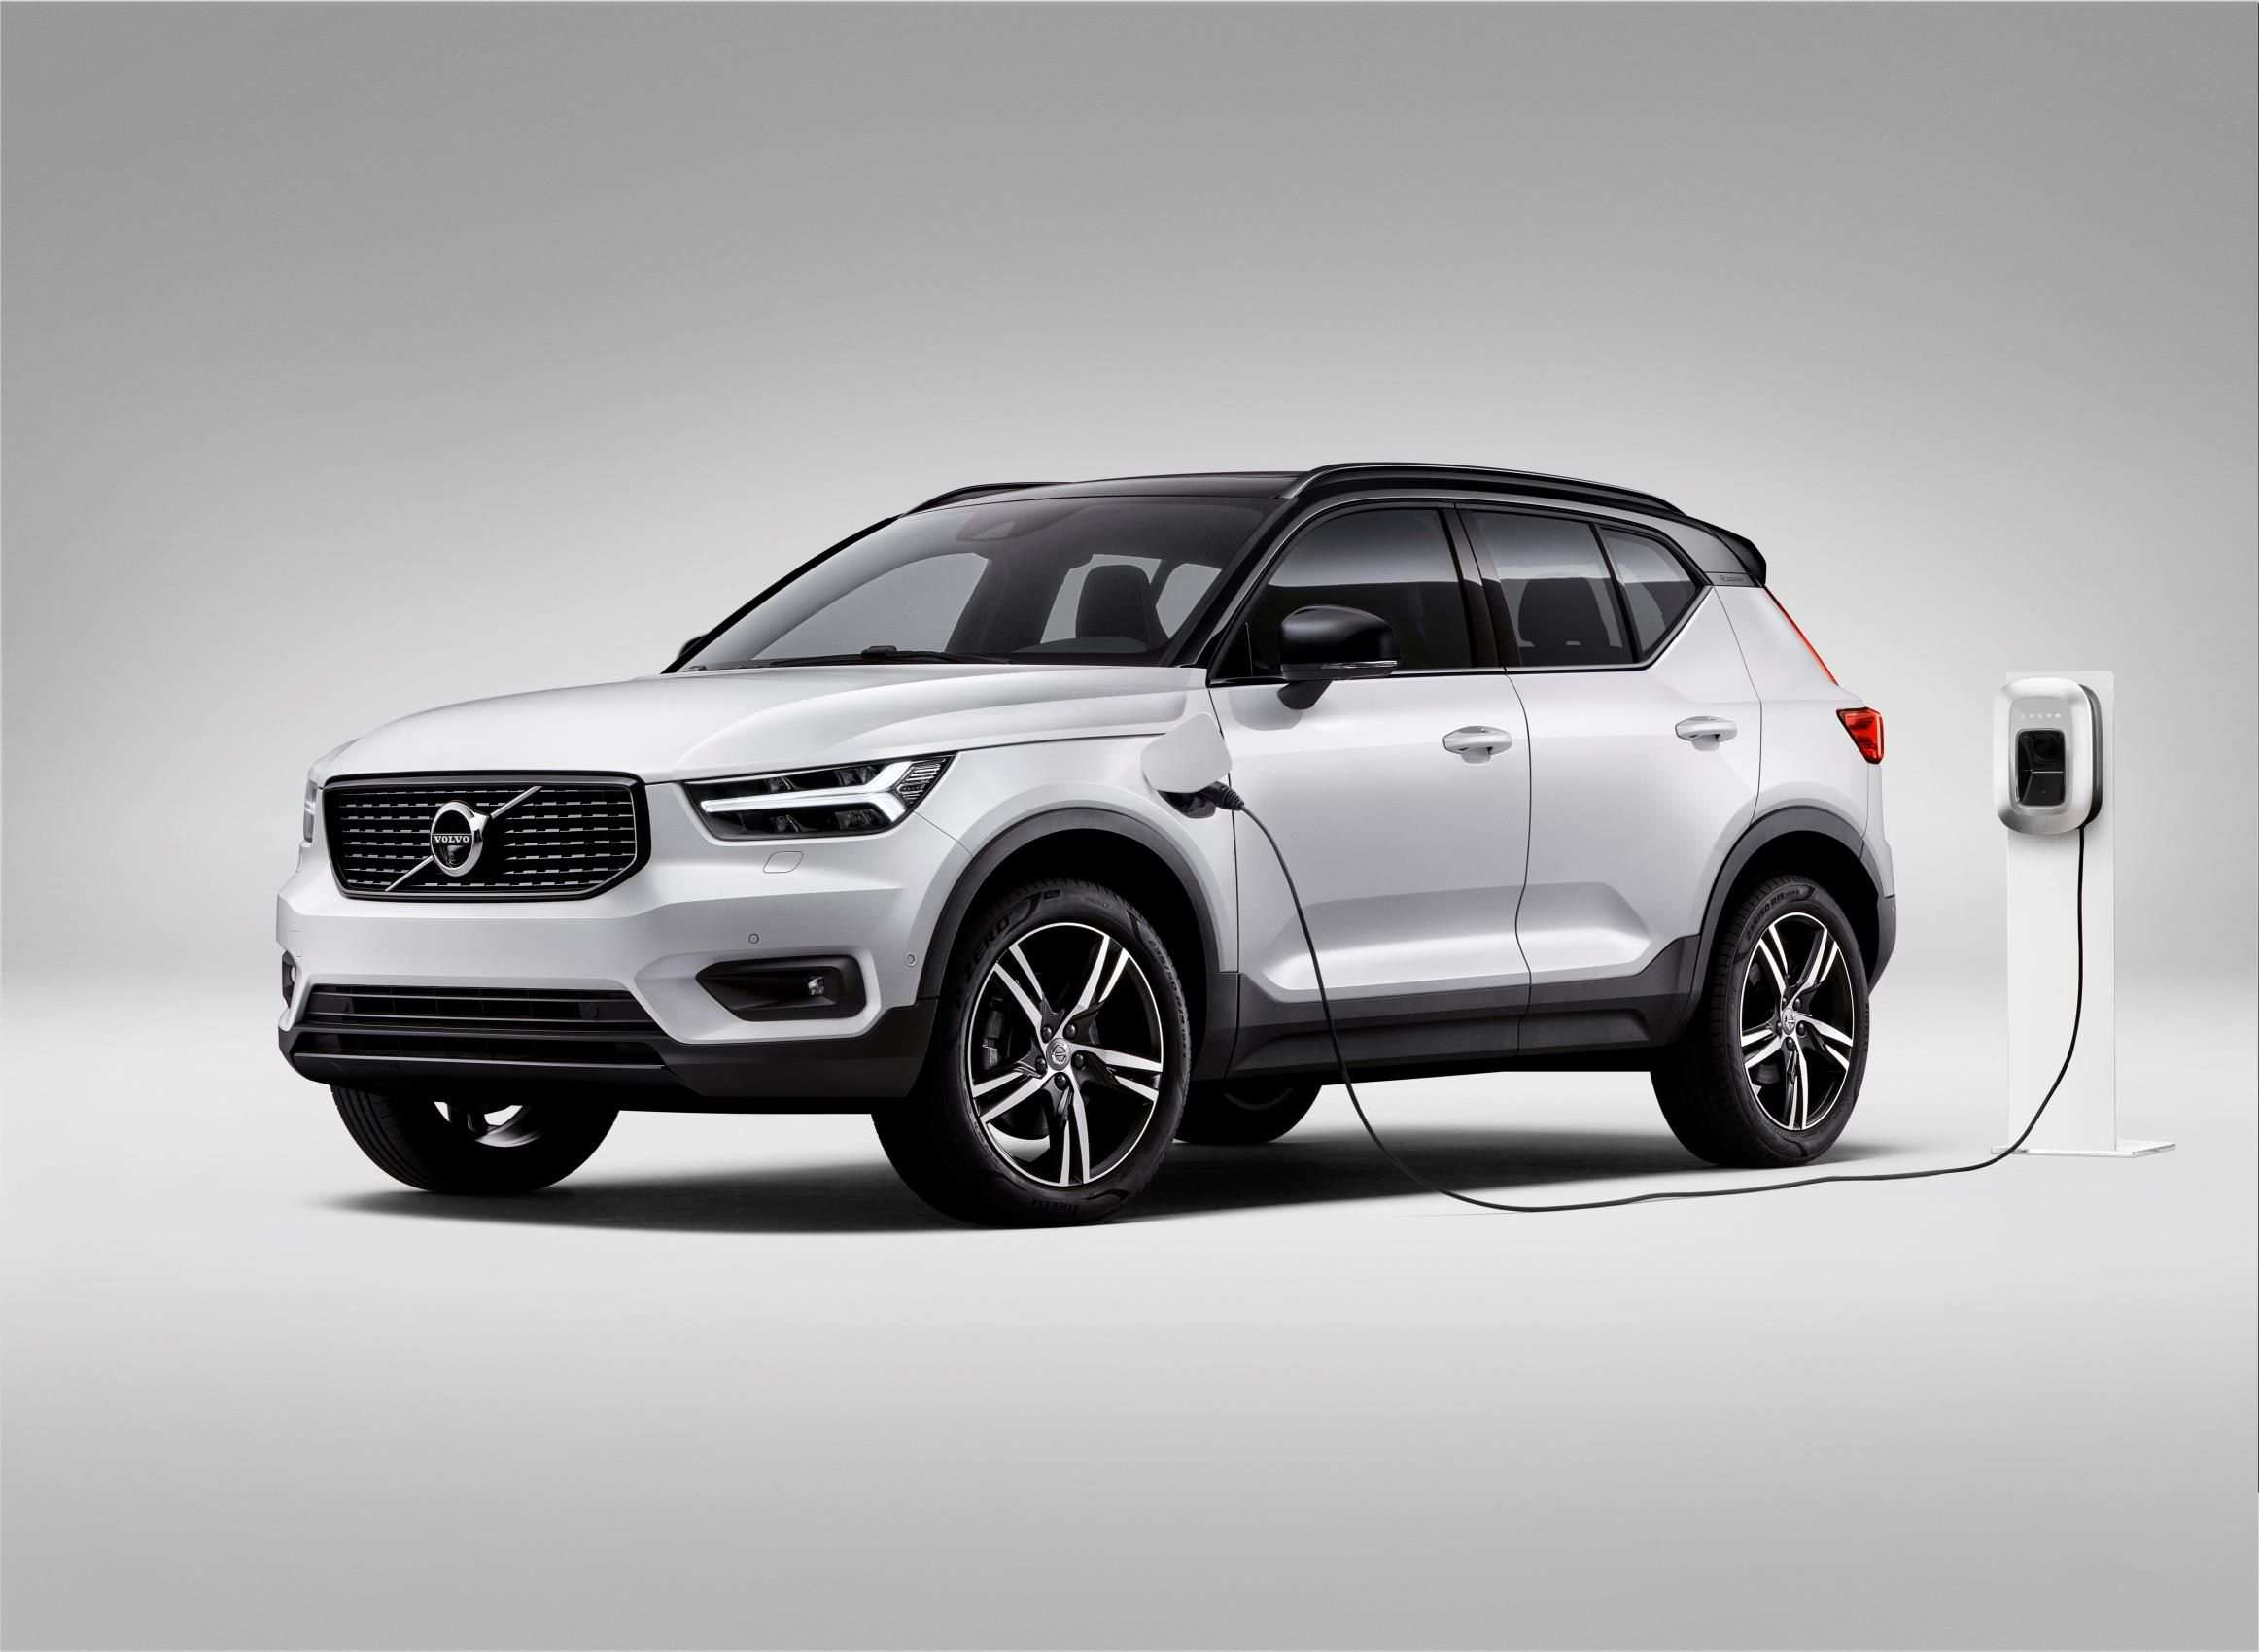 18 Best Review Volvo 2020 Xc40 Exterior First Drive by Volvo 2020 Xc40 Exterior